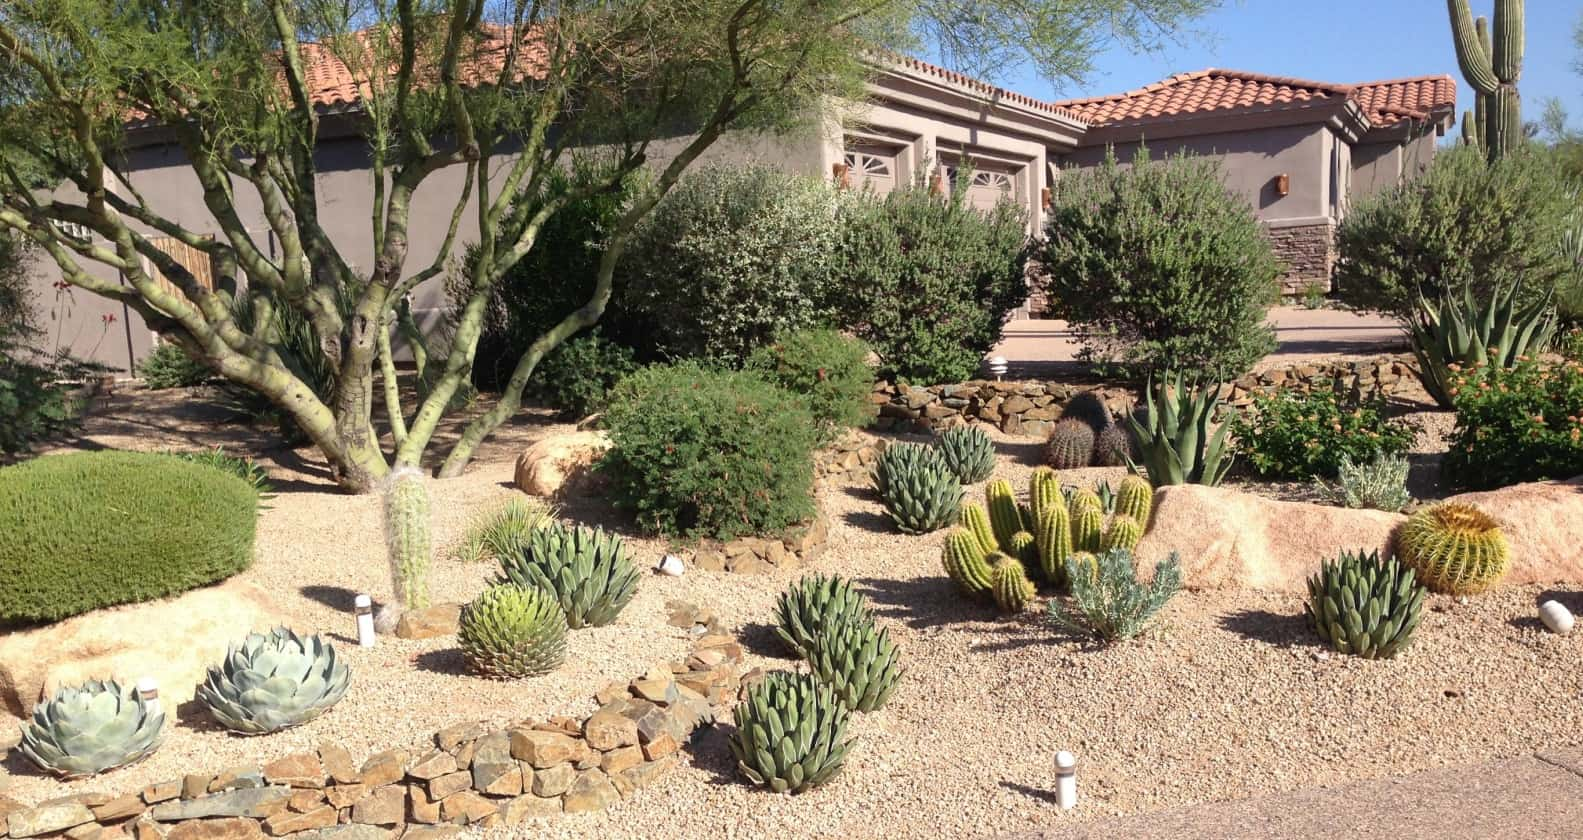 Best Landscape Design Ideas: Decorating Your Courtyard. Rock stone areas and succulents at the front yard